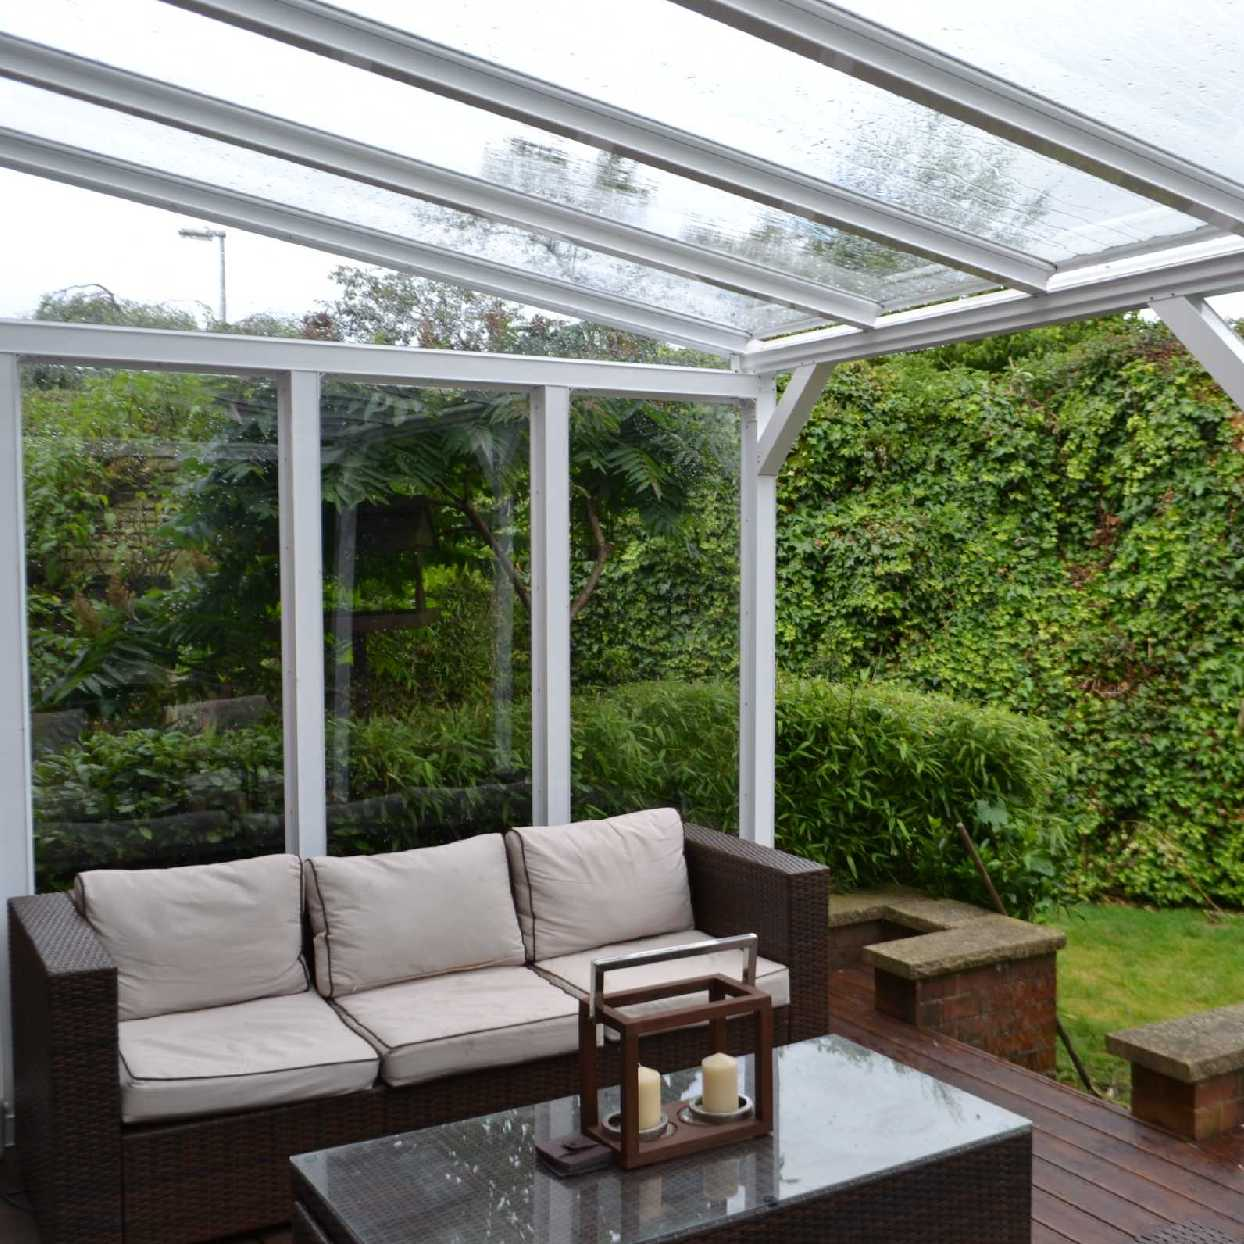 Omega Smart White Lean-To Canopy with 6mm Glass Clear Plate Polycarbonate Glazing - 8.4m (W) x 2.0m (P), (4) Supporting Posts